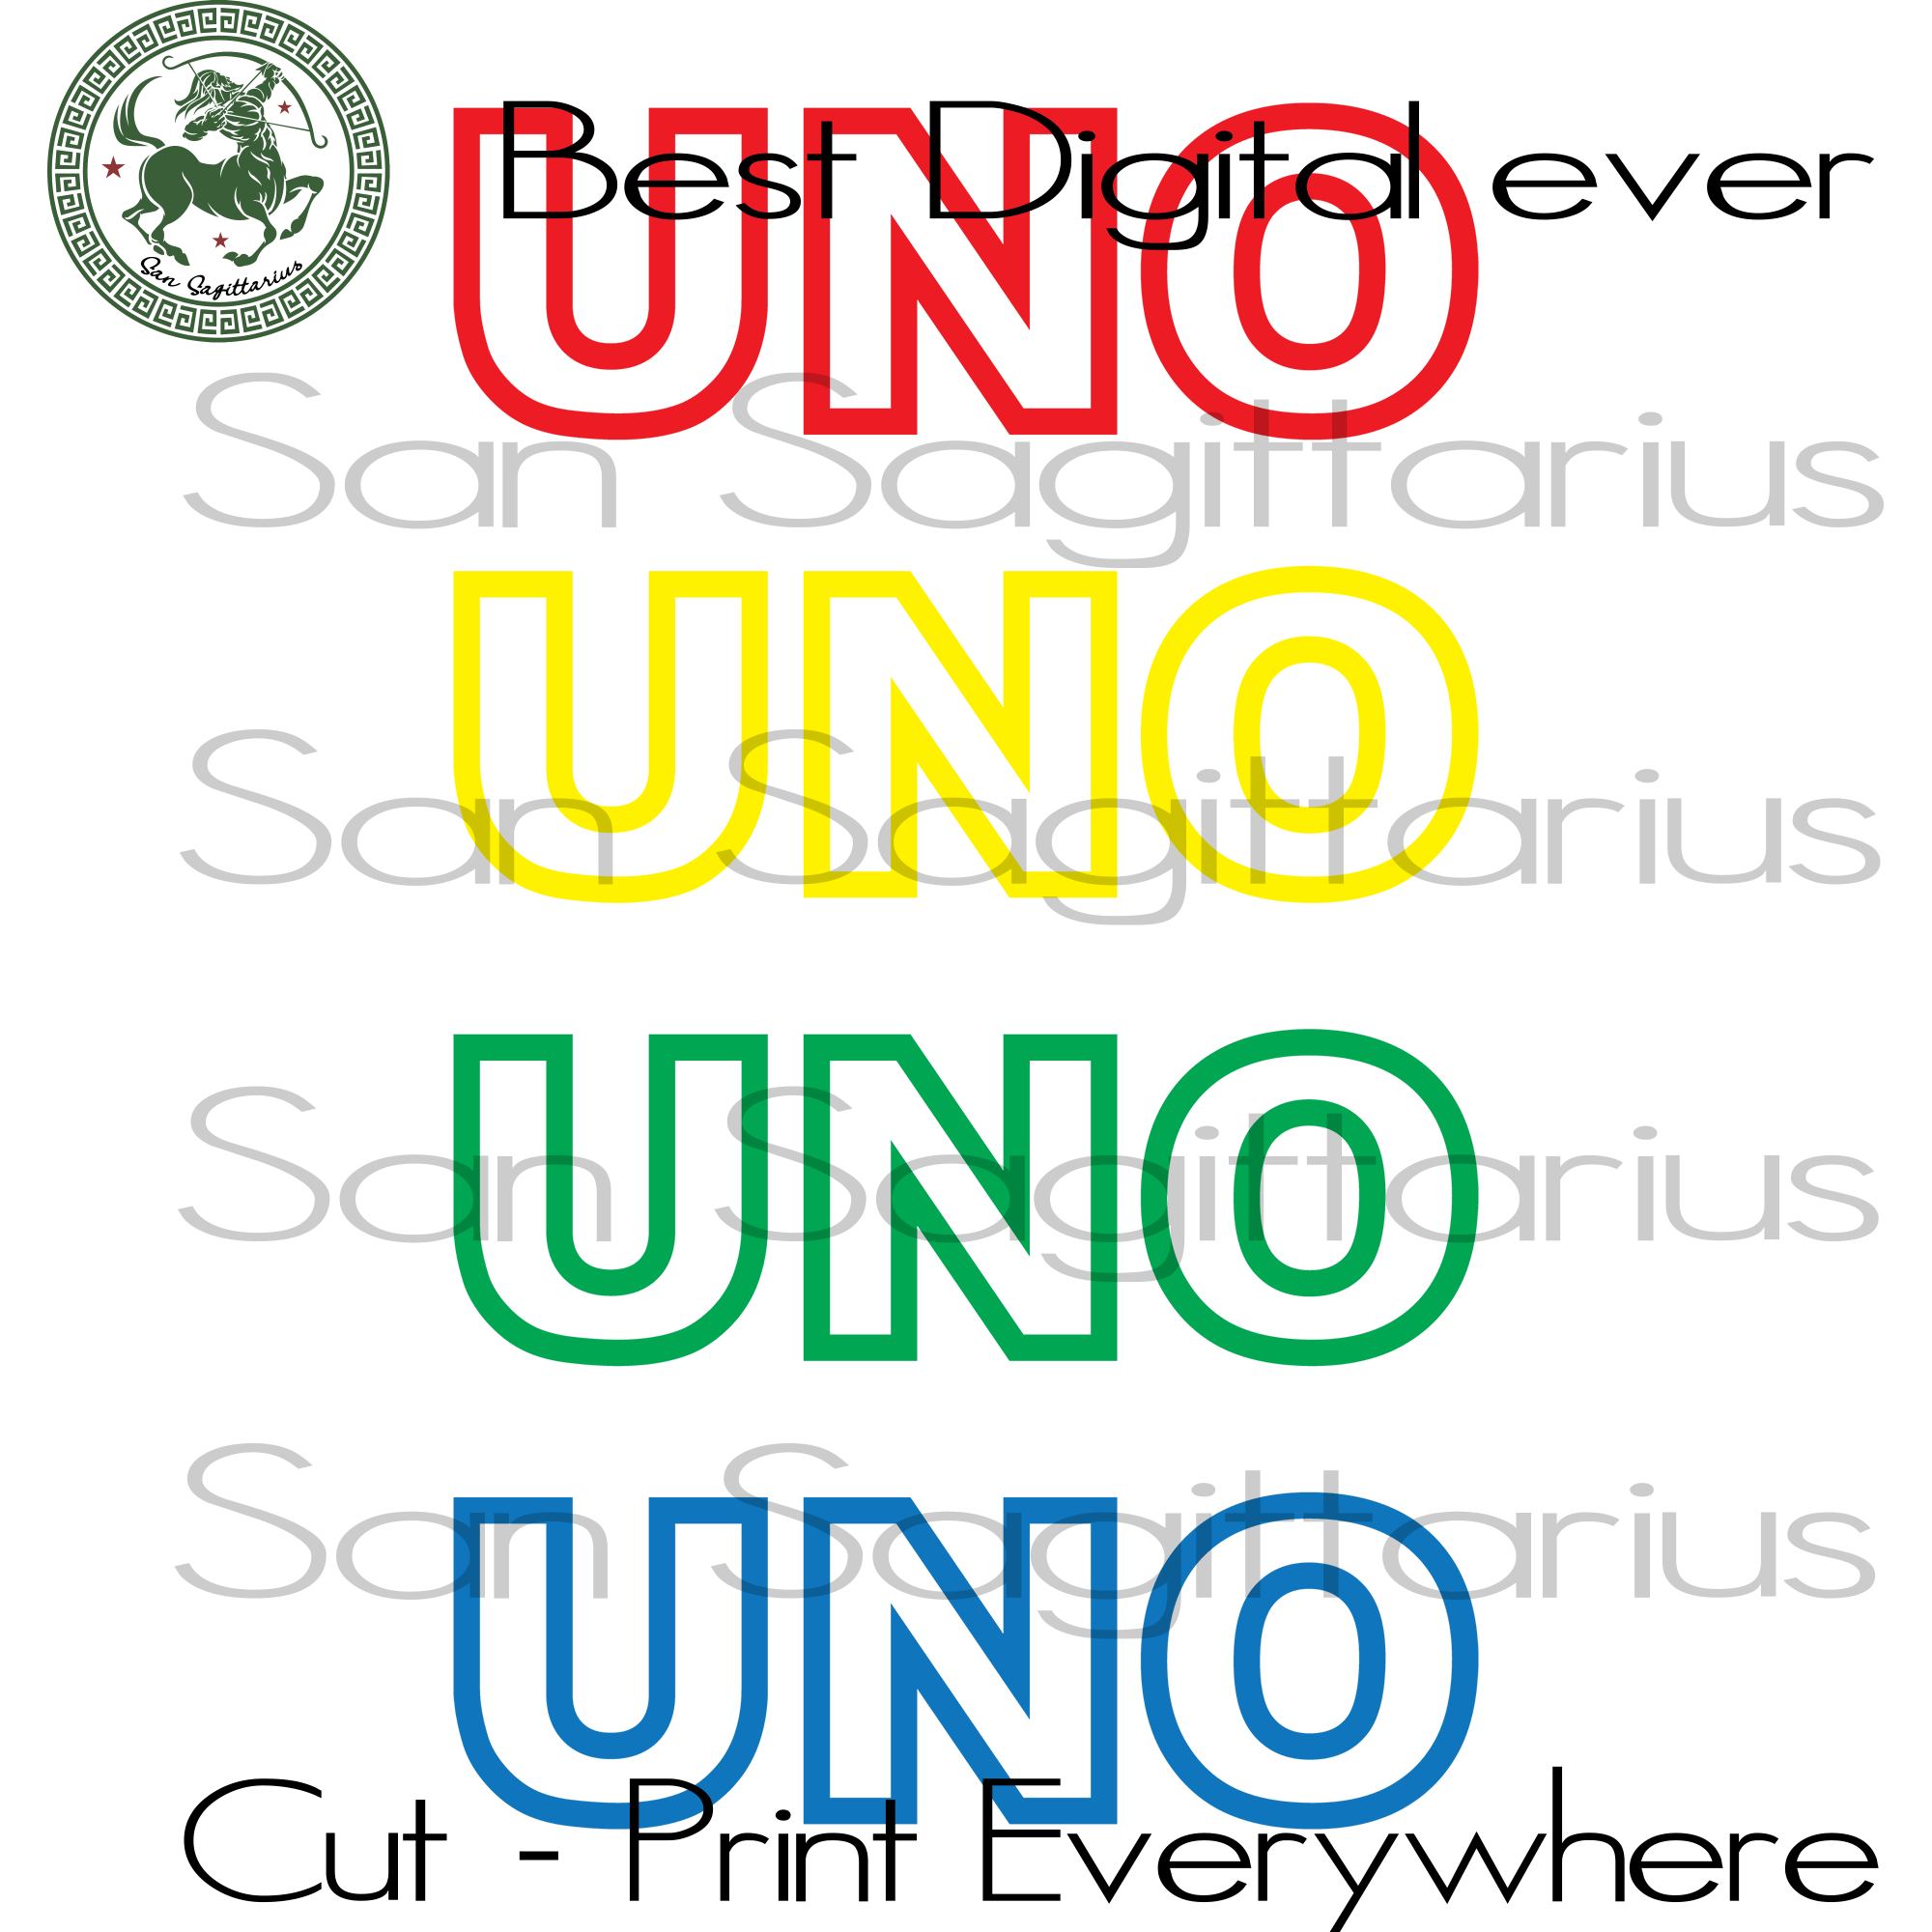 Uno logo svg, uno svg birthday, uno drunk logo, uno shirt svg, uno card svg, uno we out, uno party, uno alphabet, uno 2020 svg, senior uno, class of 2020, uno birthday, uno card, low cost dig